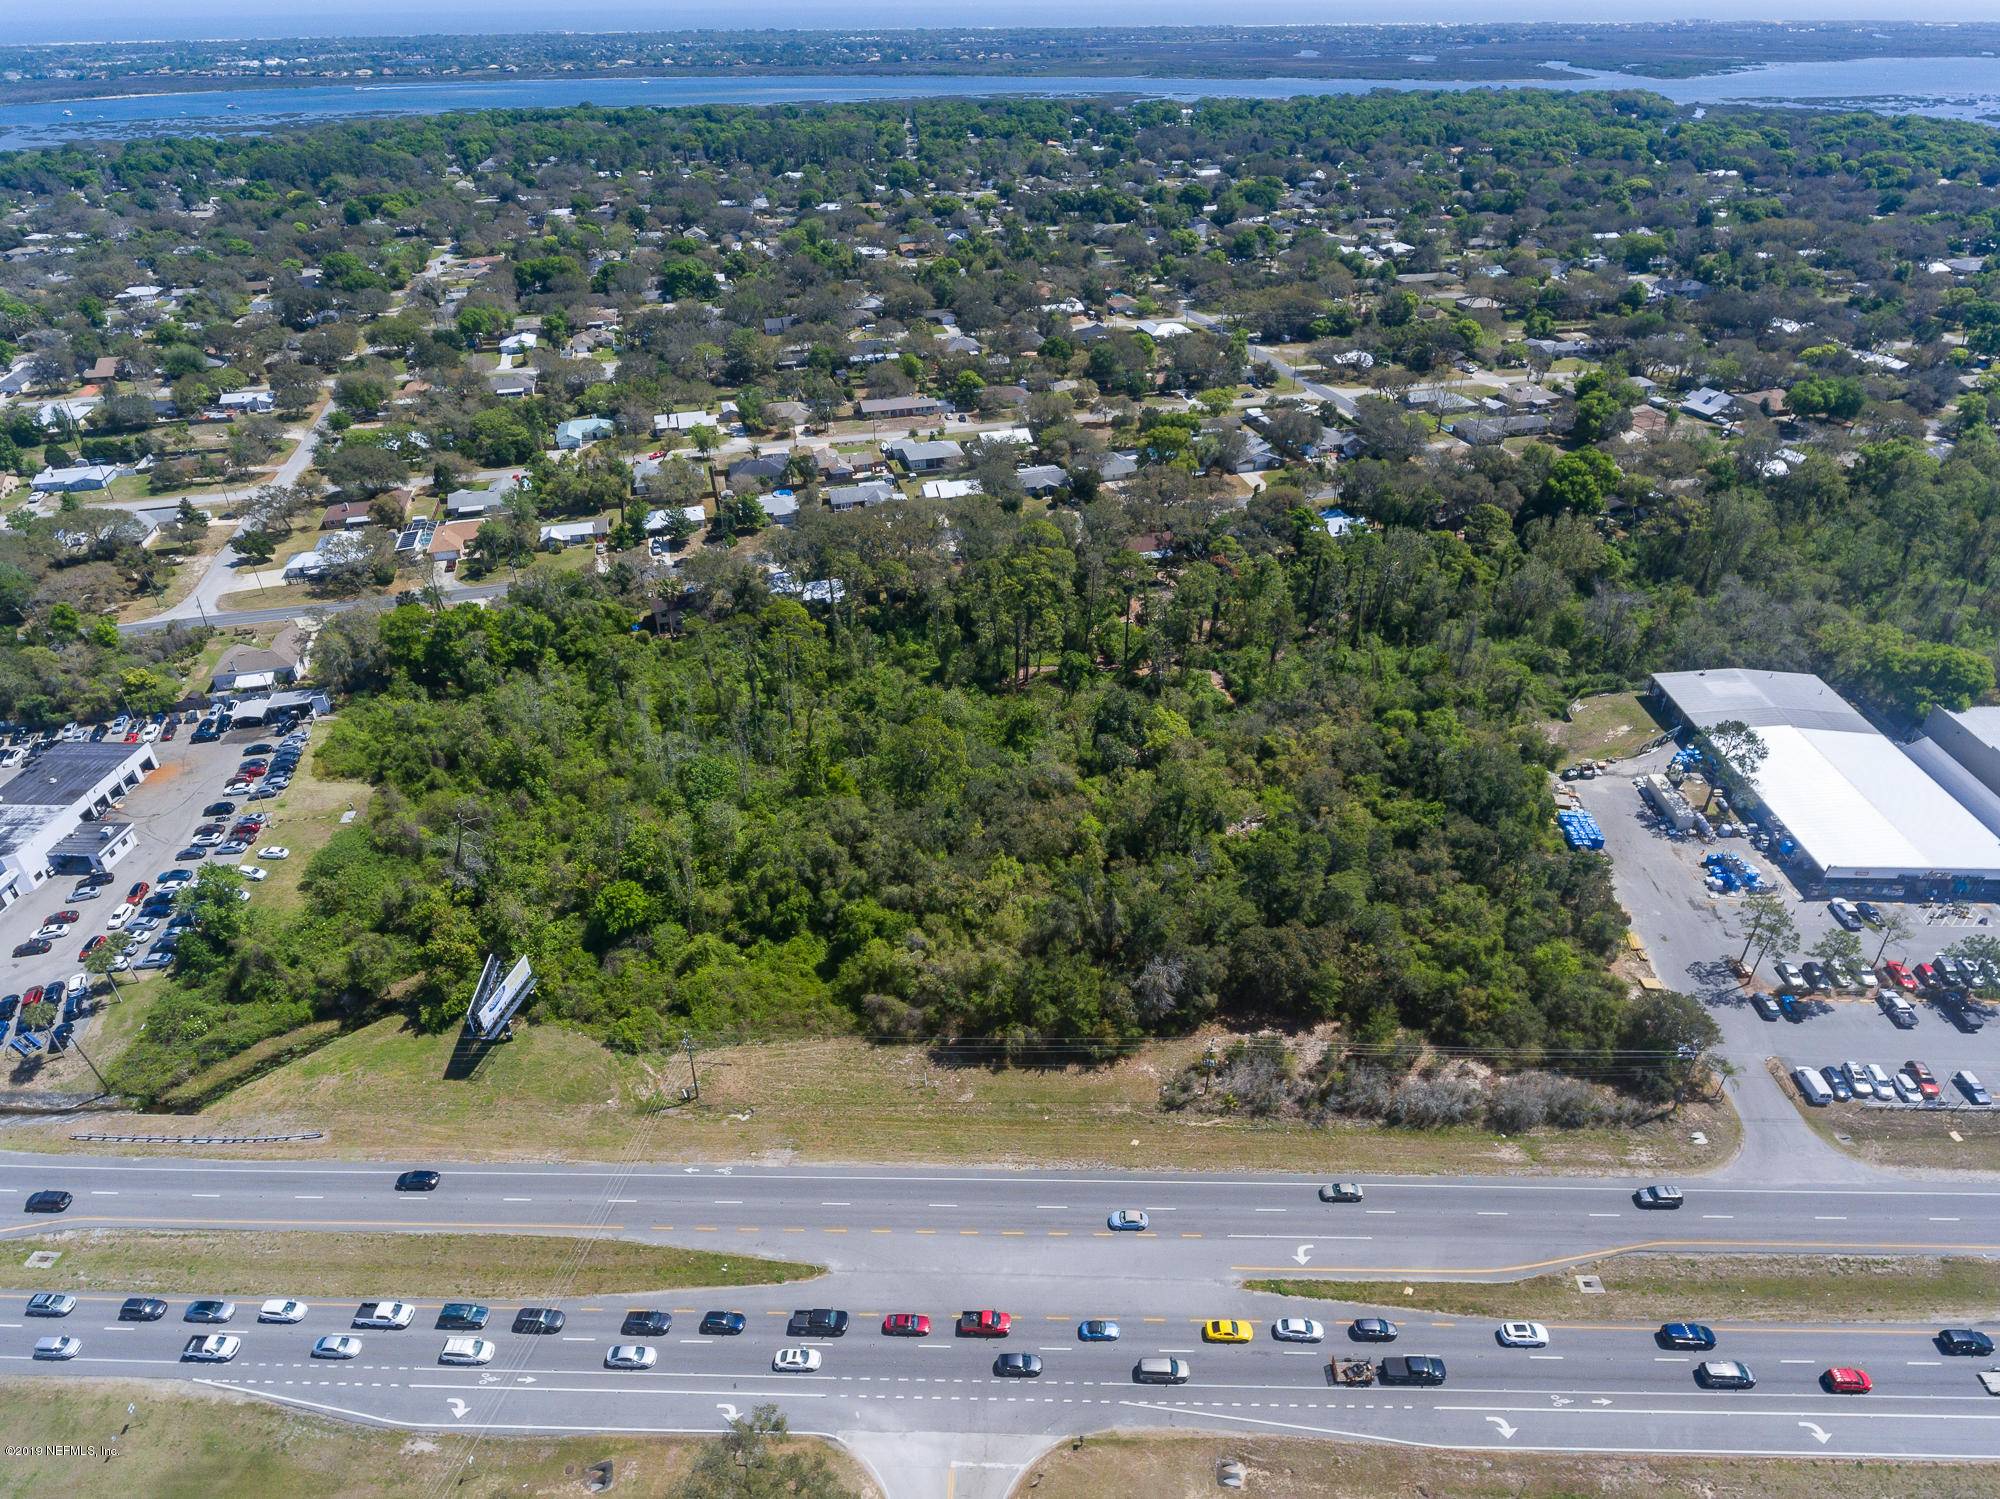 2940 US HIGHWAY 1, ST AUGUSTINE, FLORIDA 32086, ,Vacant land,For sale,US HIGHWAY 1,988357